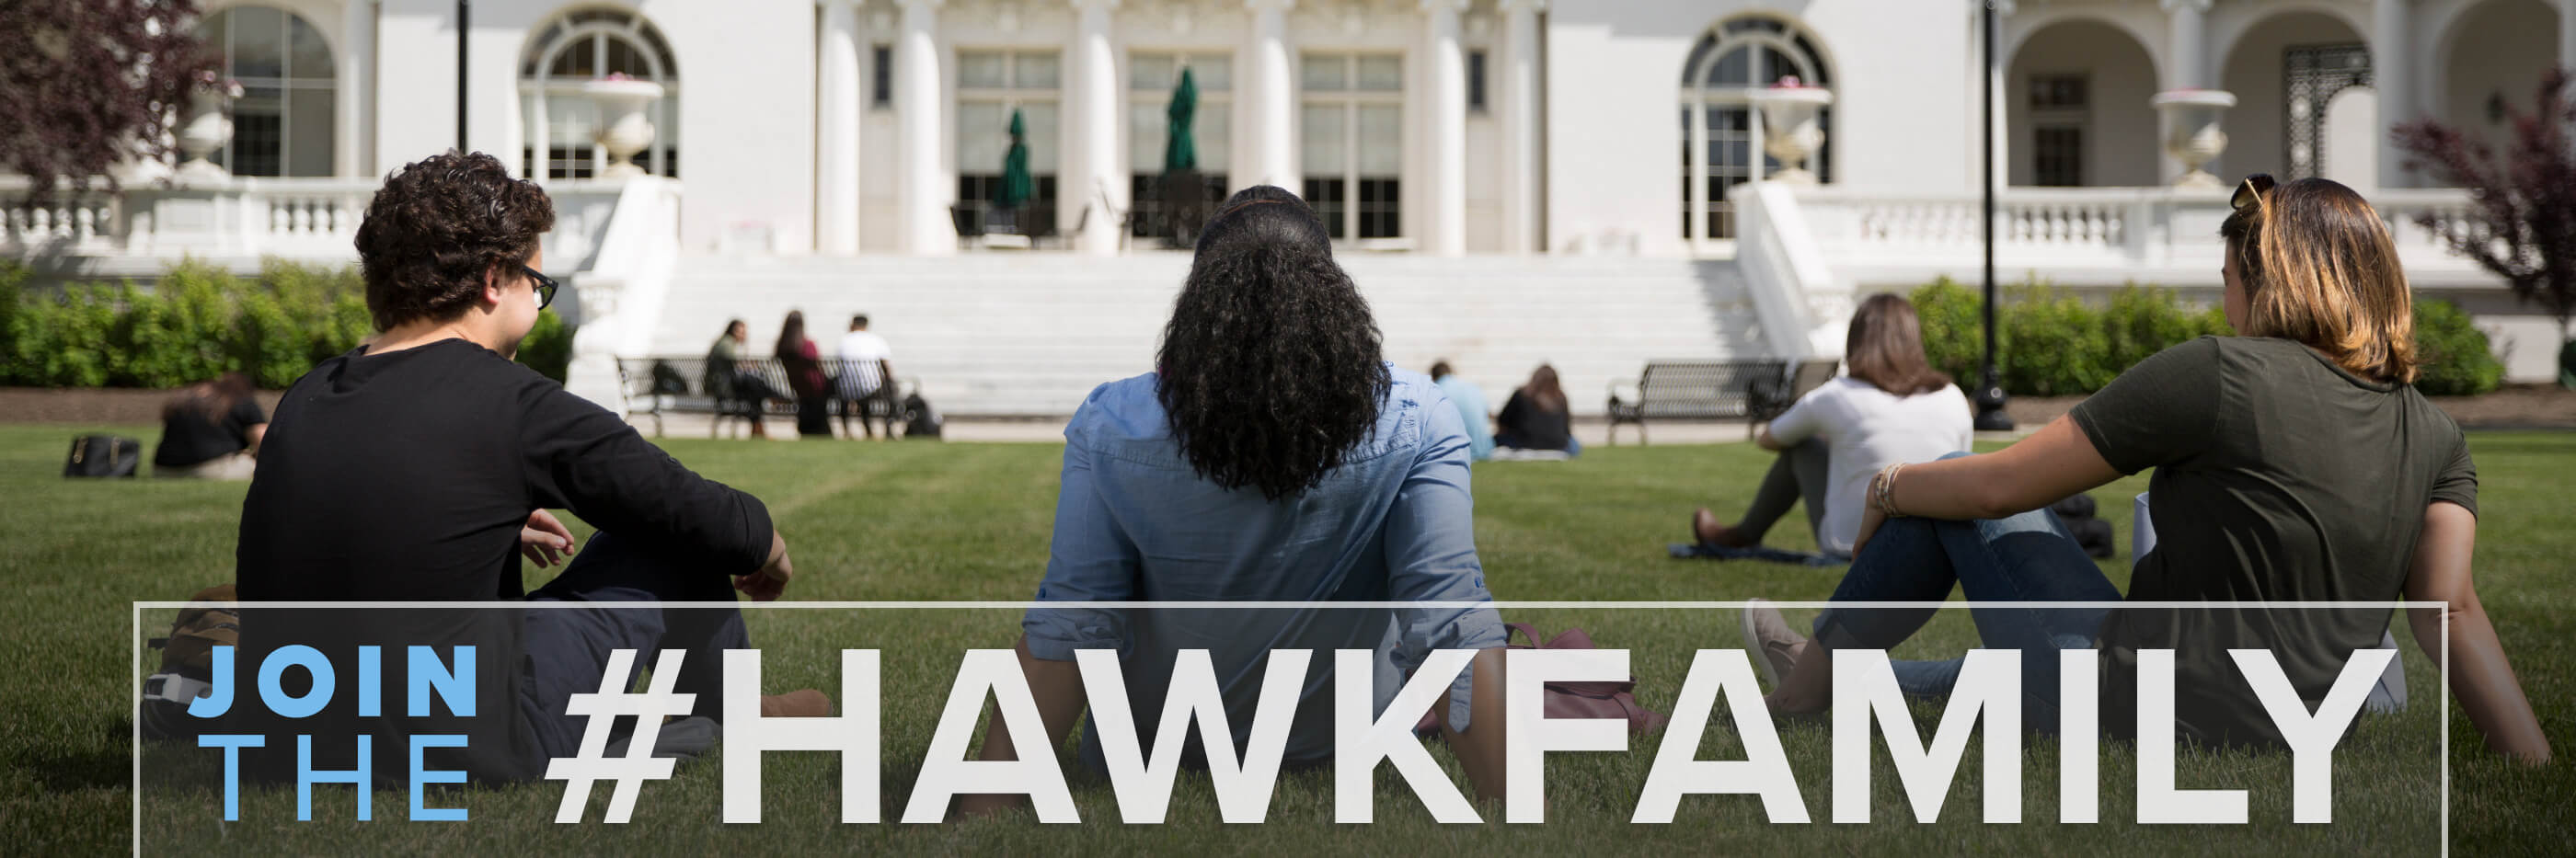 Join The Hawk Family